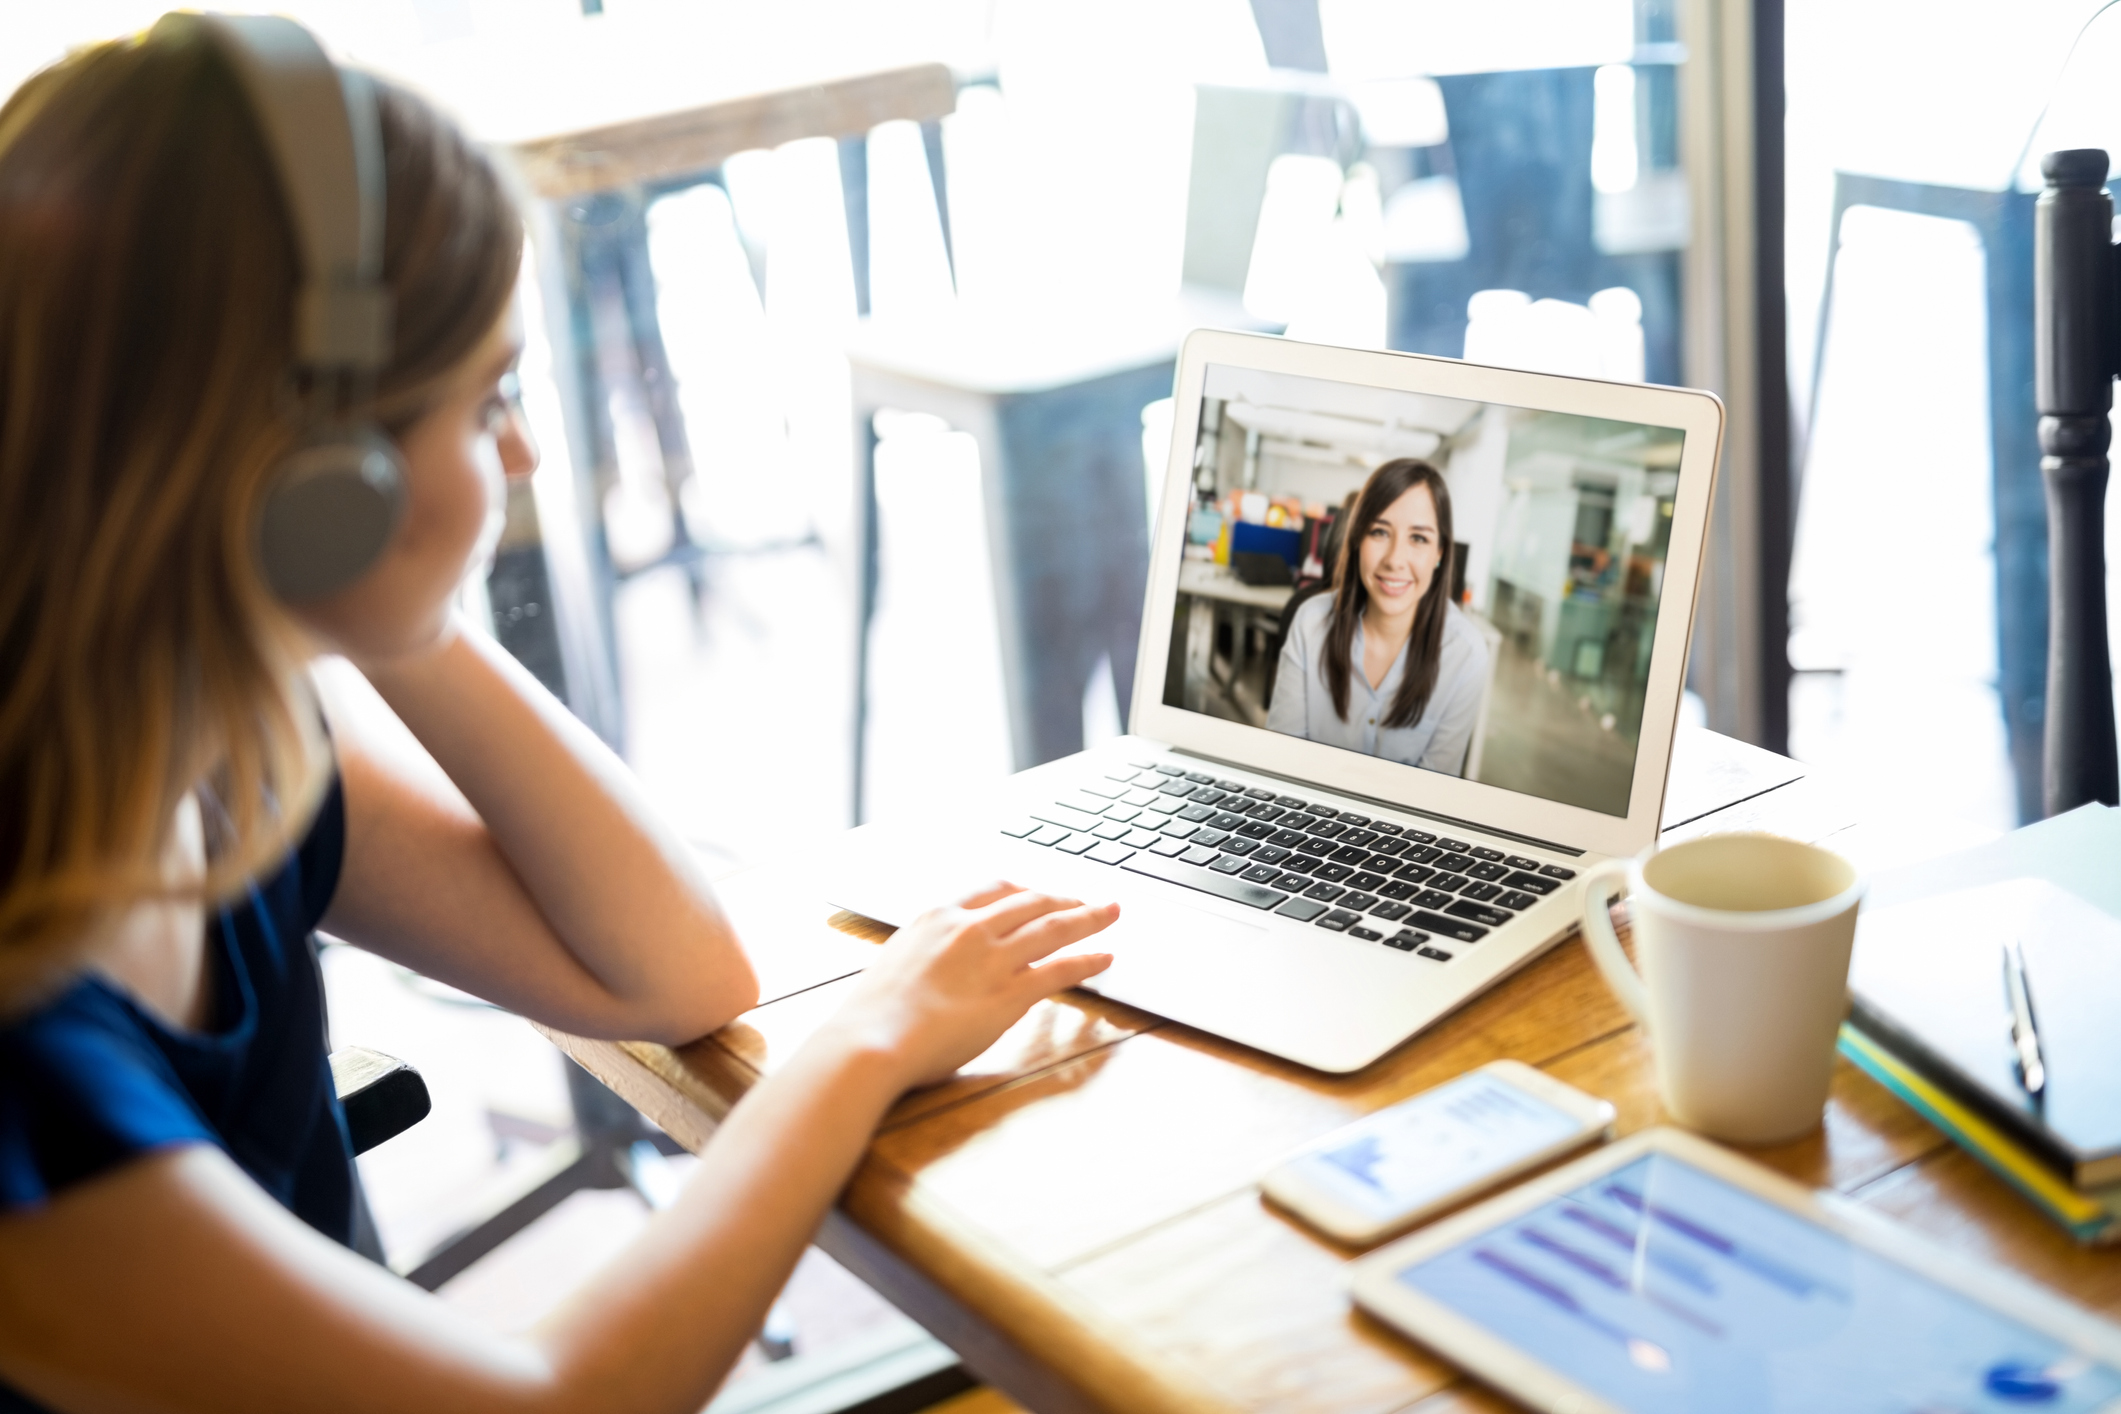 6 Tips to Keep Your Audience Engaged During Online Meetings